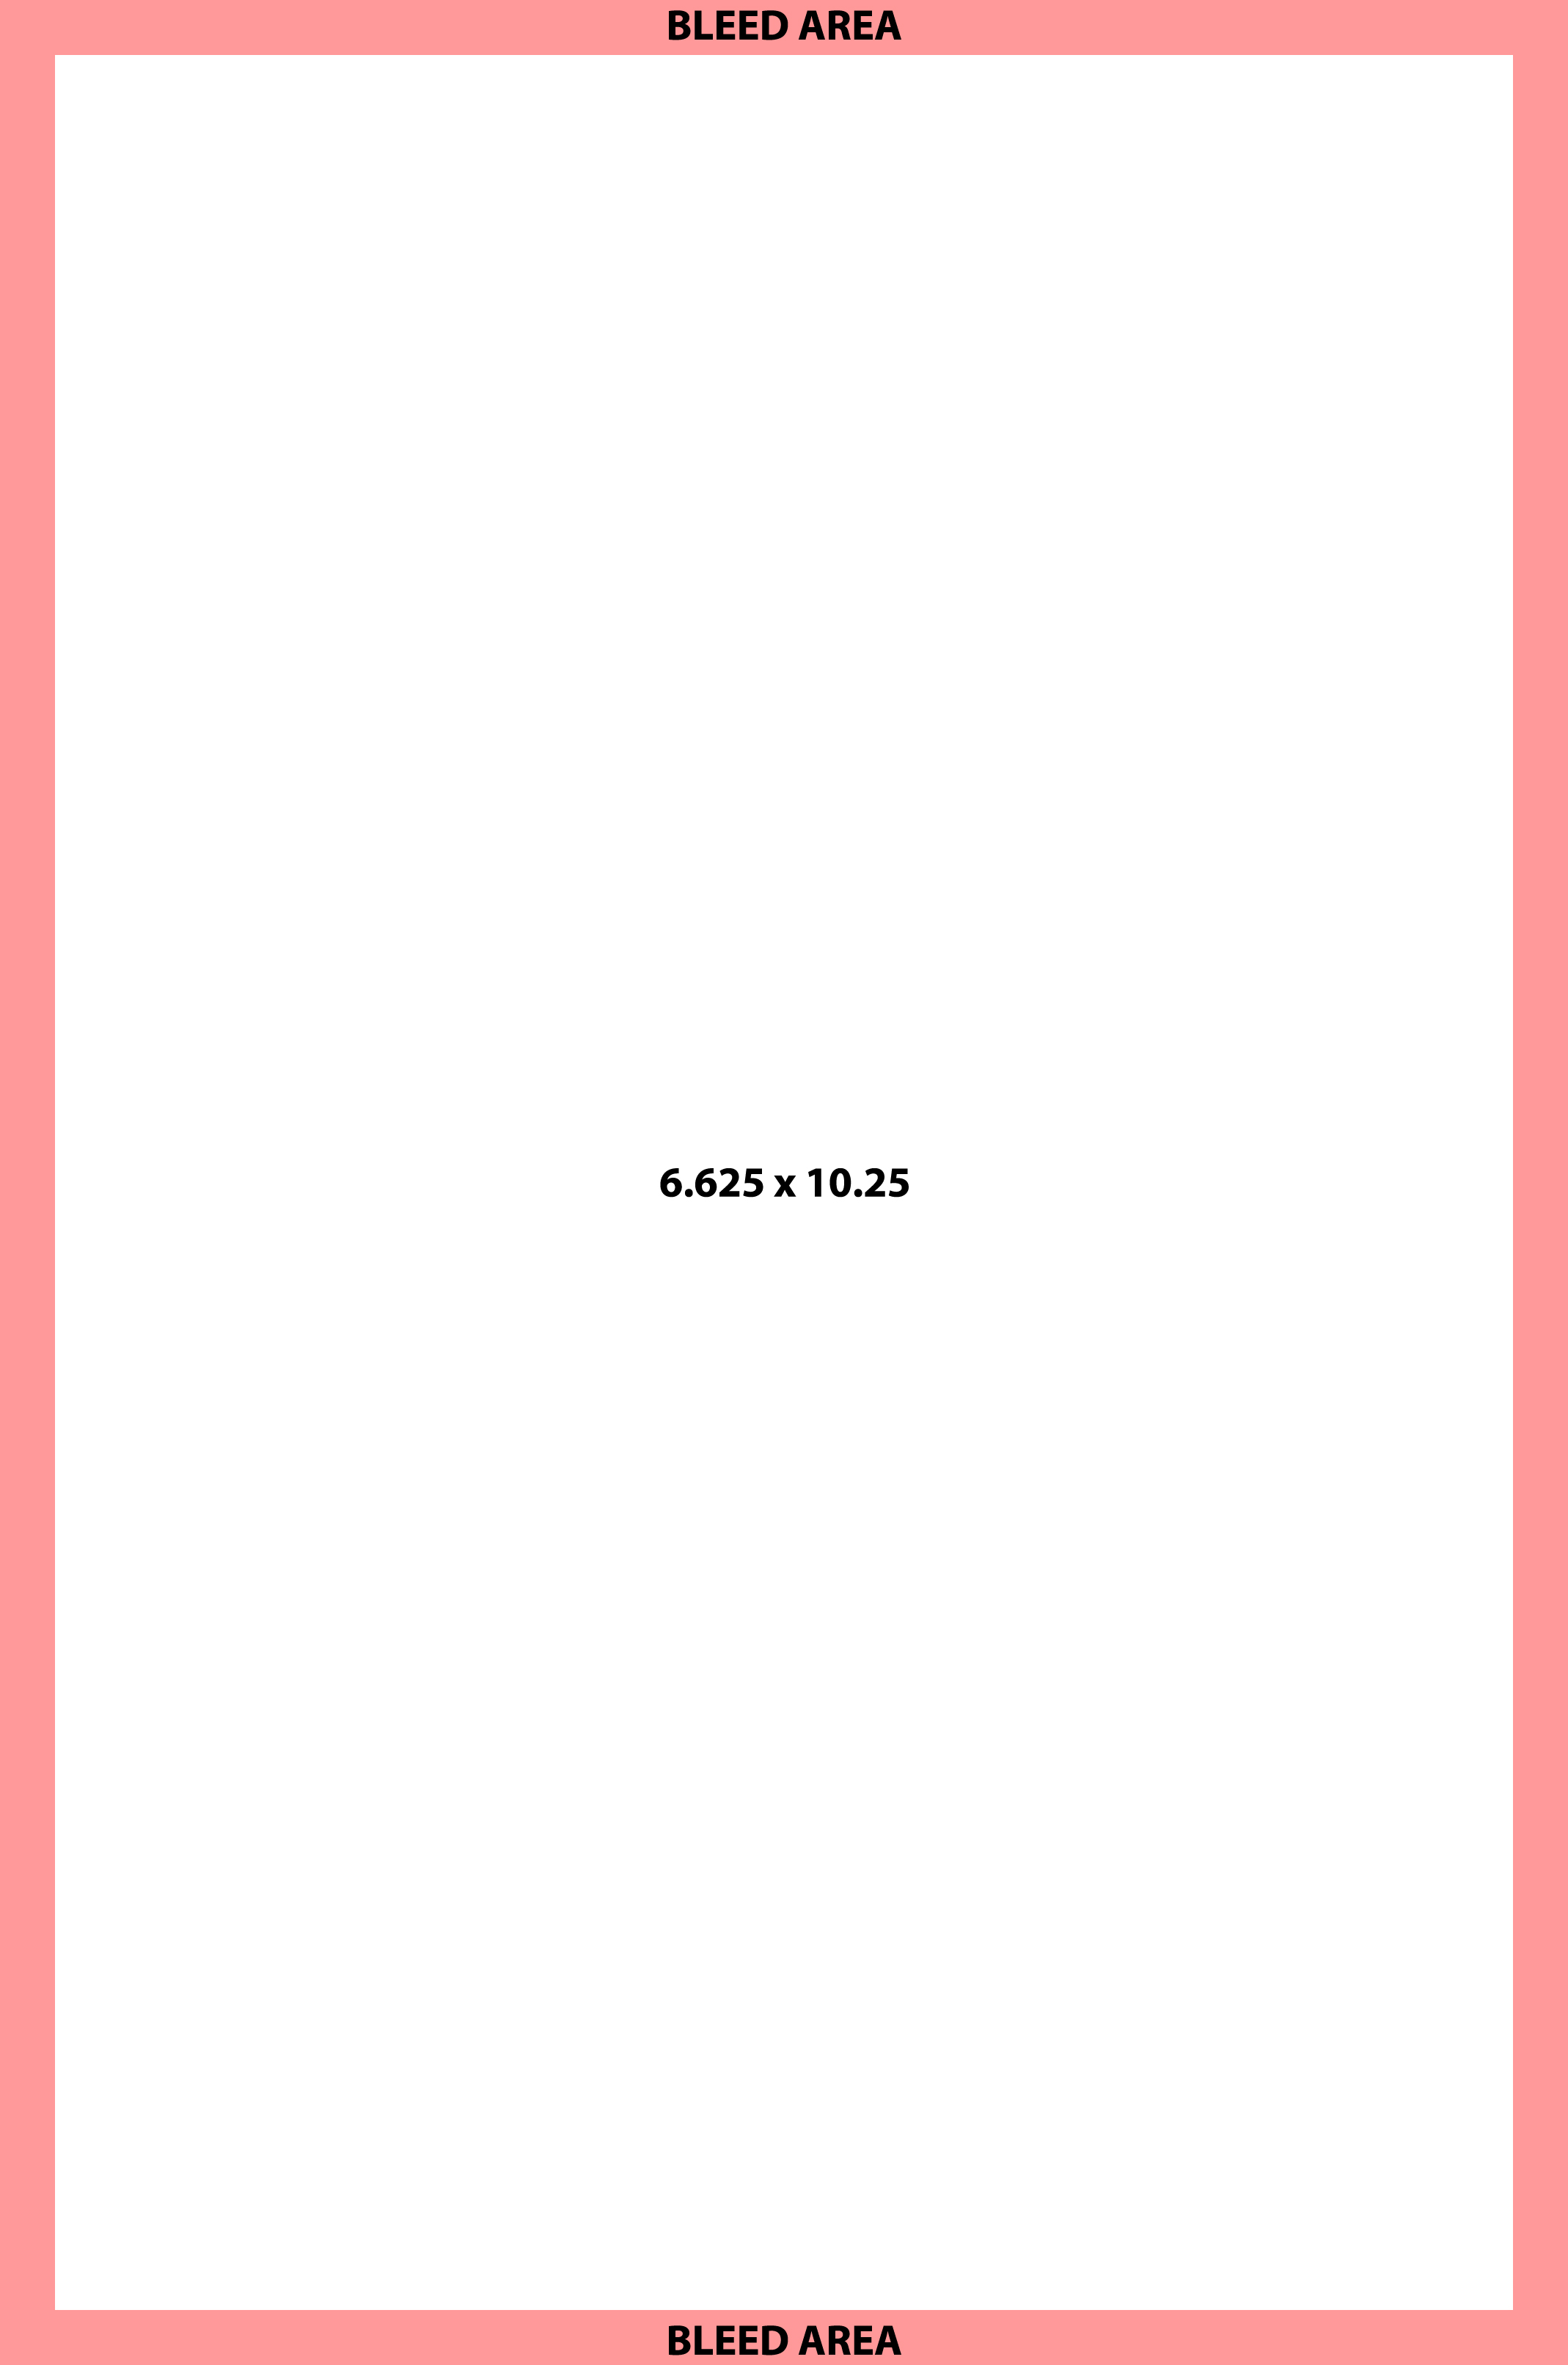 Book Cover Template Word. how to make your own book cover lesson 3 ...